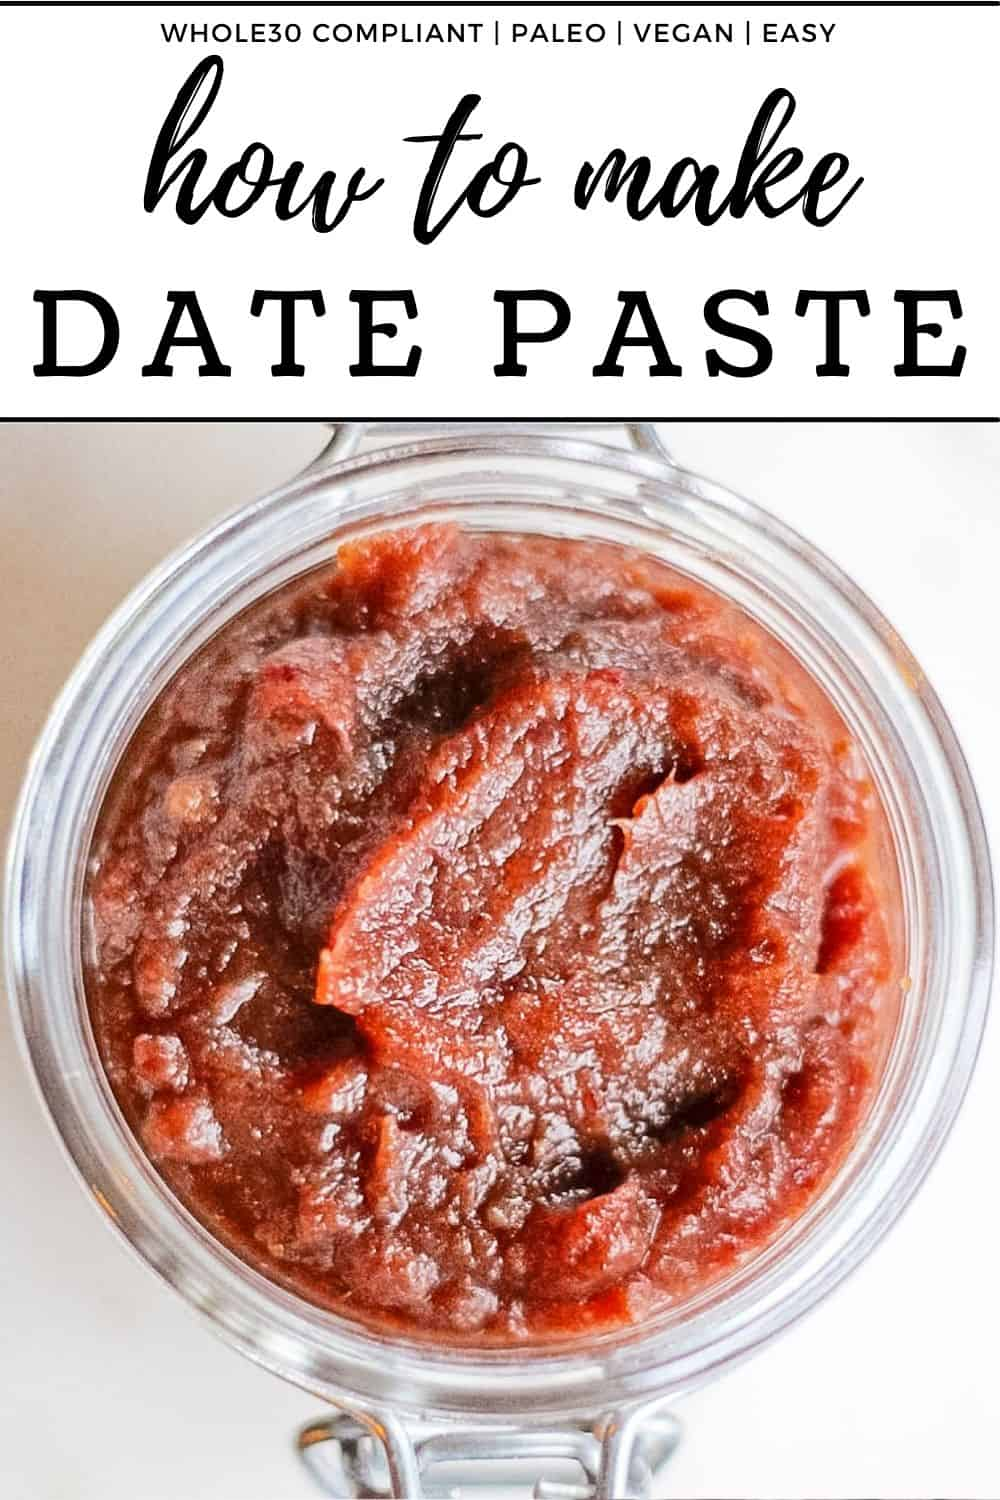 Date paste recipe with title showing the date paste in a clear glass jar.